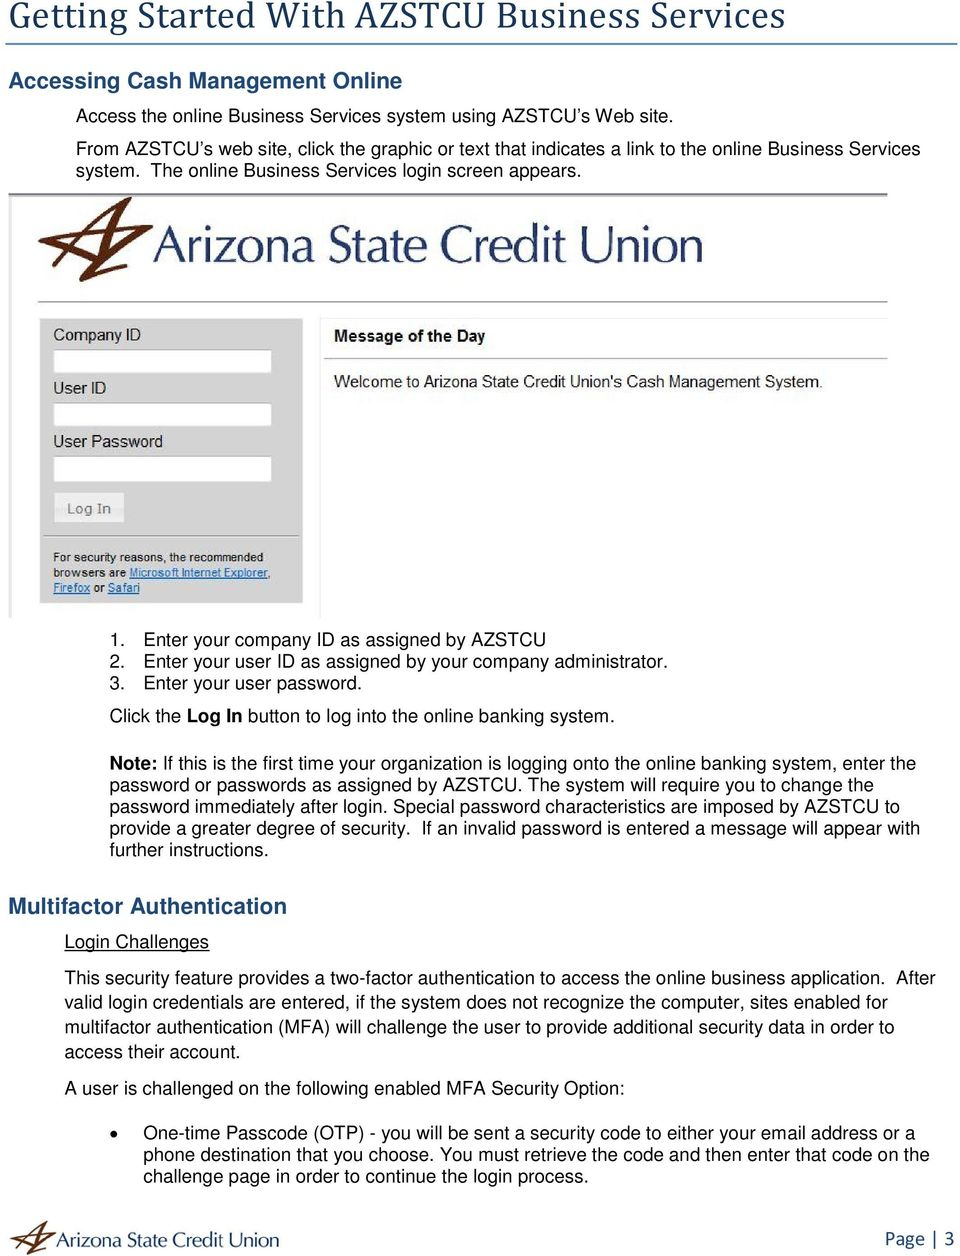 Enter your company ID as assigned by AZSTCU 2. Enter your user ID as assigned by your company administrator. 3. Enter your user password. Click the Log In button to log into the online banking system.